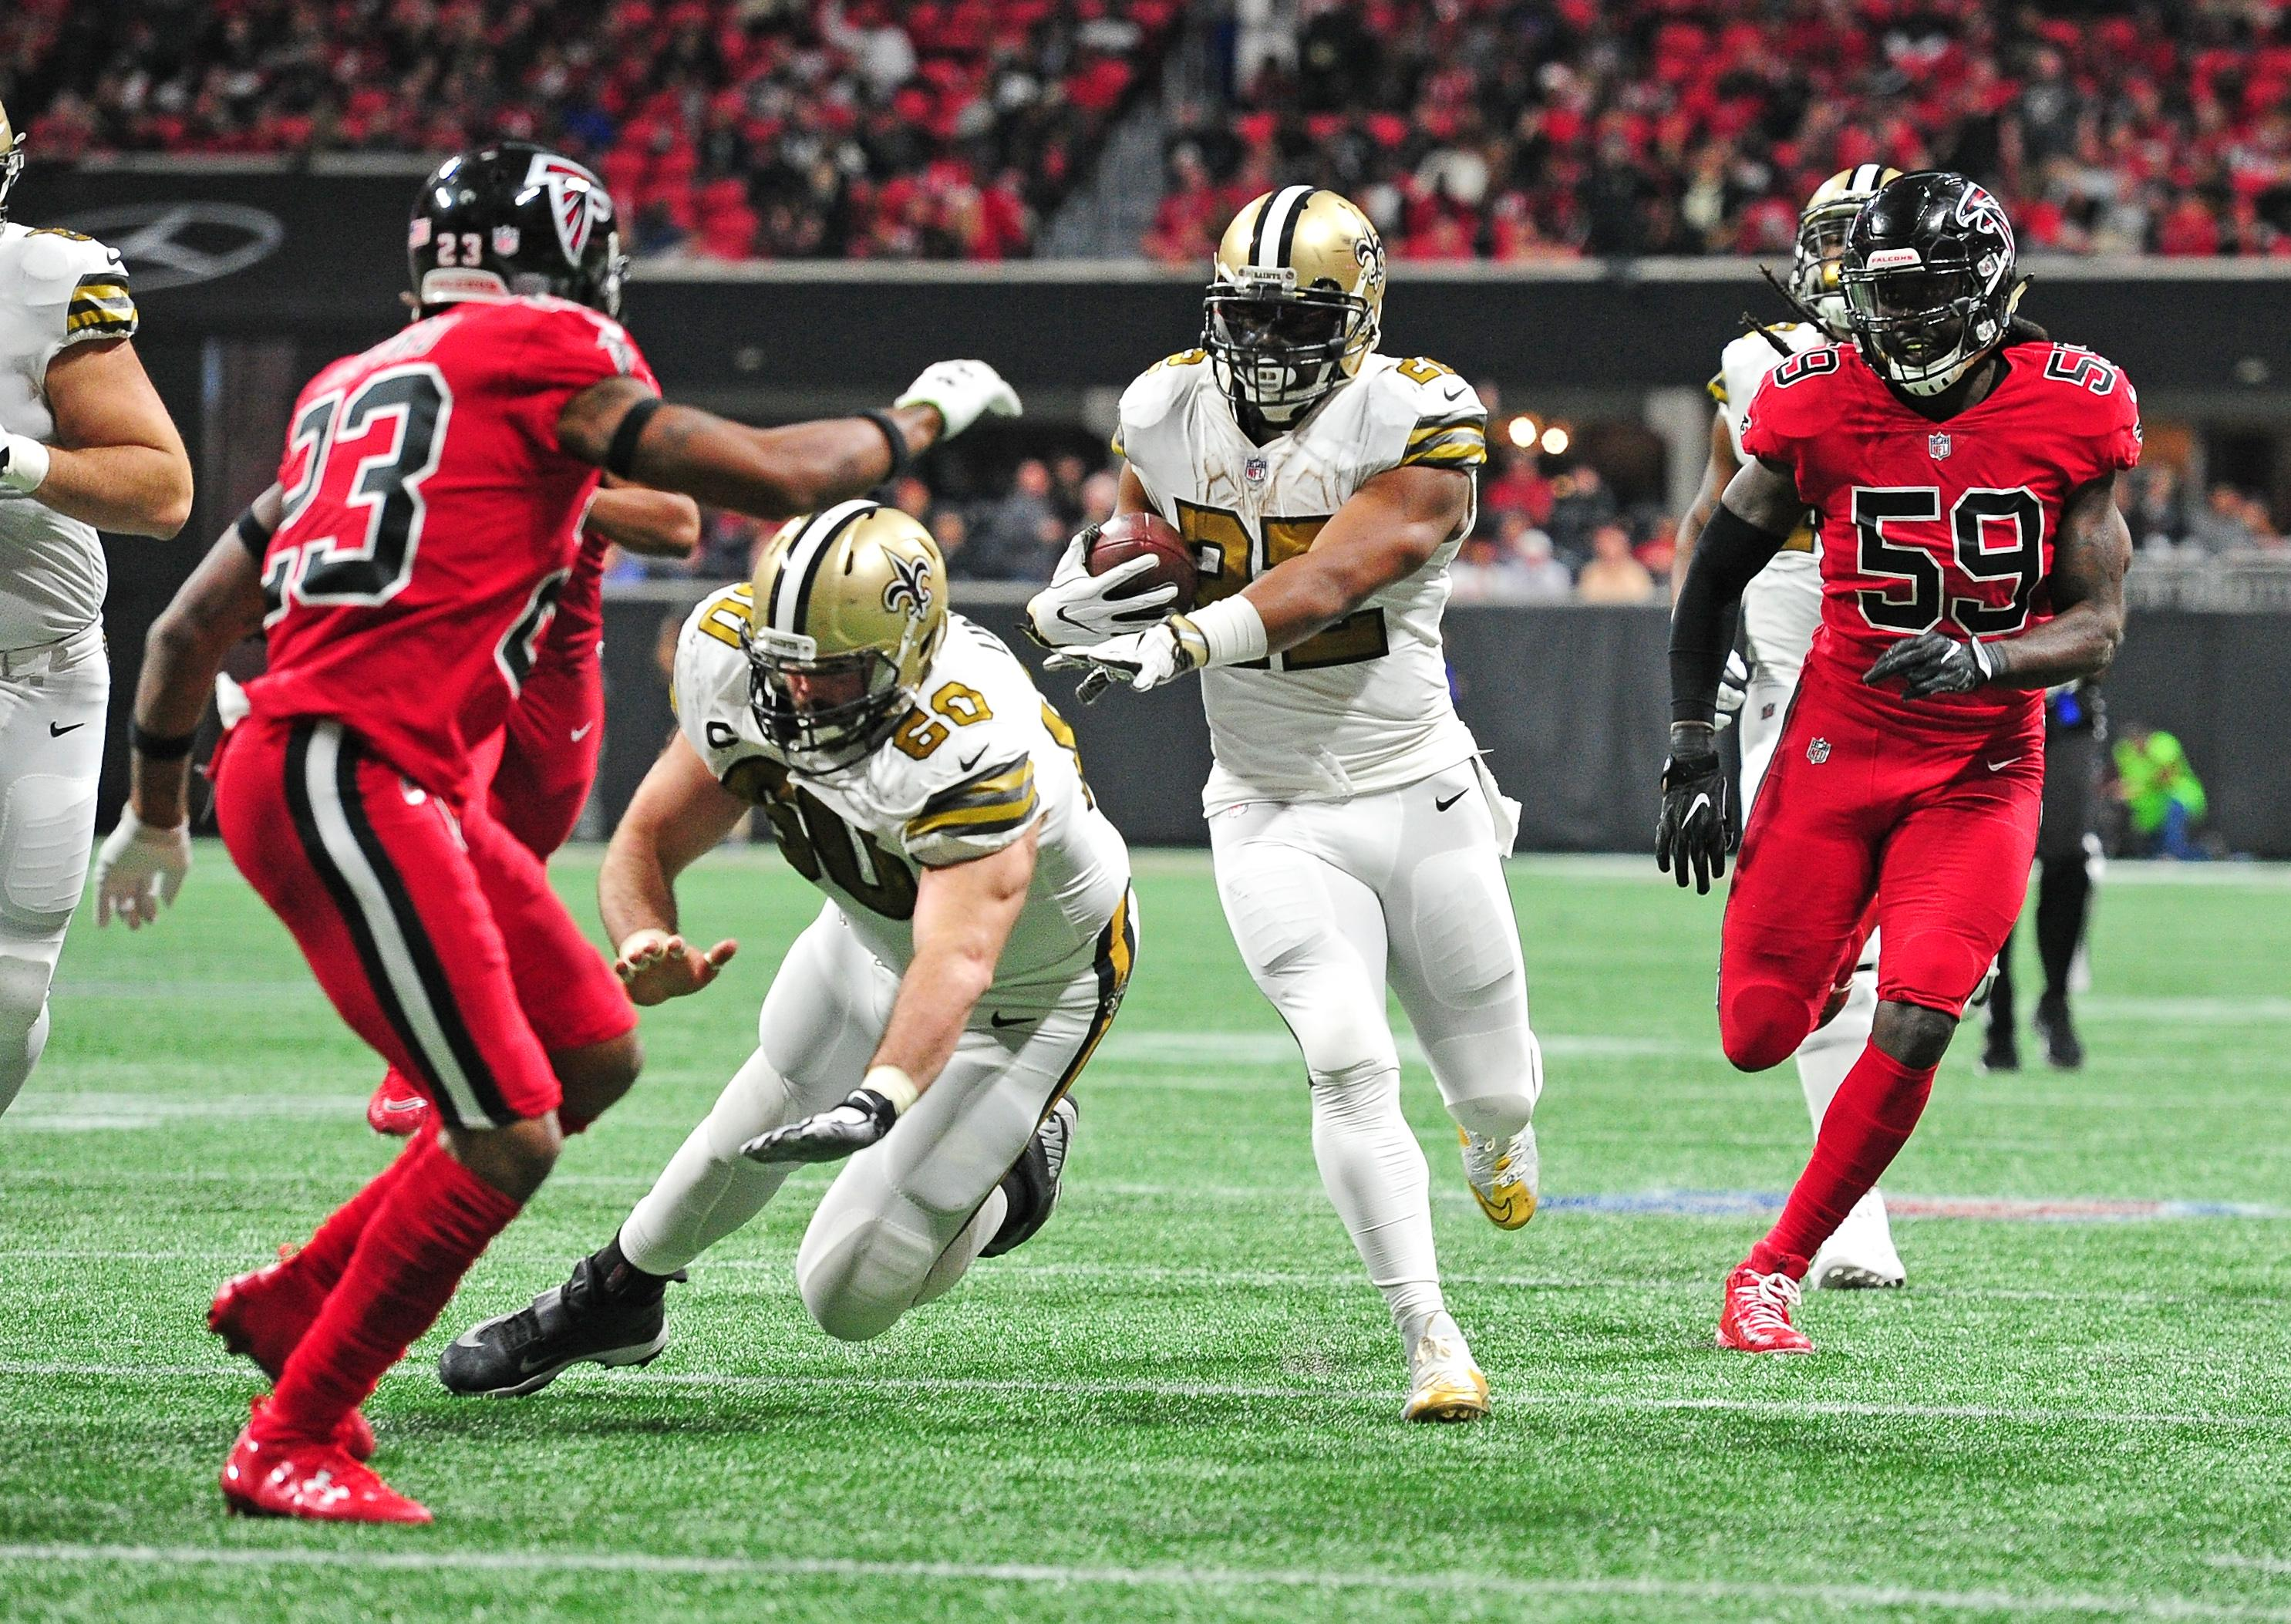 Falcons vs. Bucs to be High-Scoring? 12/18/17